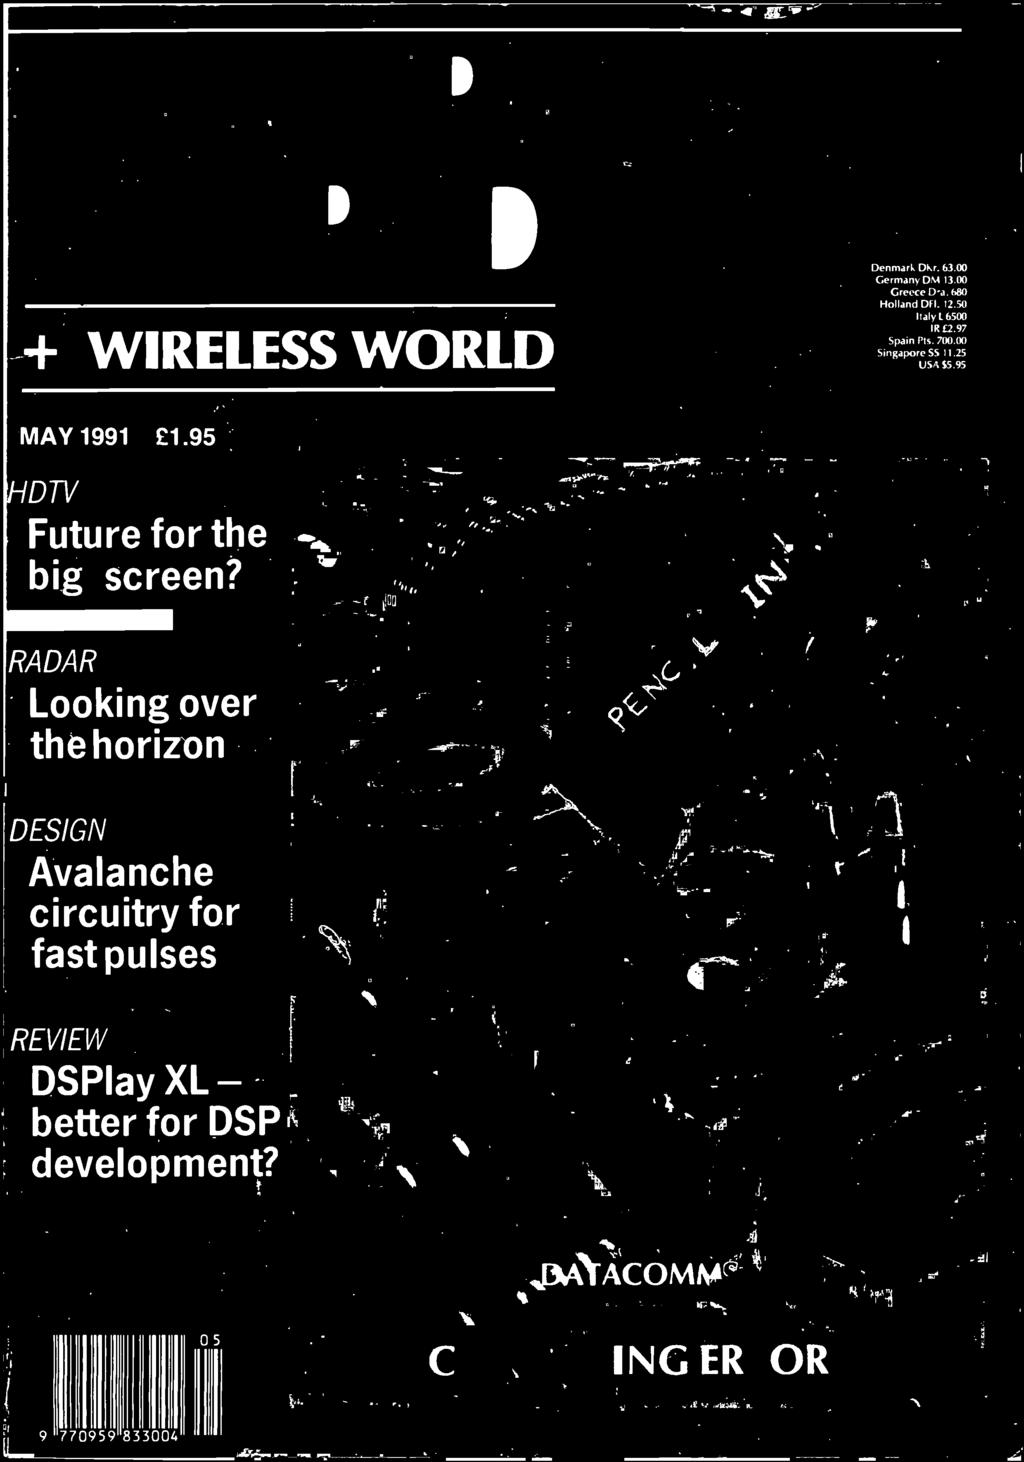 Wireless World Circuitry For Fast Pulses Better Dsp Big Lm380 Audio Voiceover Circuit Schematic Circuits Electronic Auido 7 Radar Looking Over The Horizon Design Avalanche